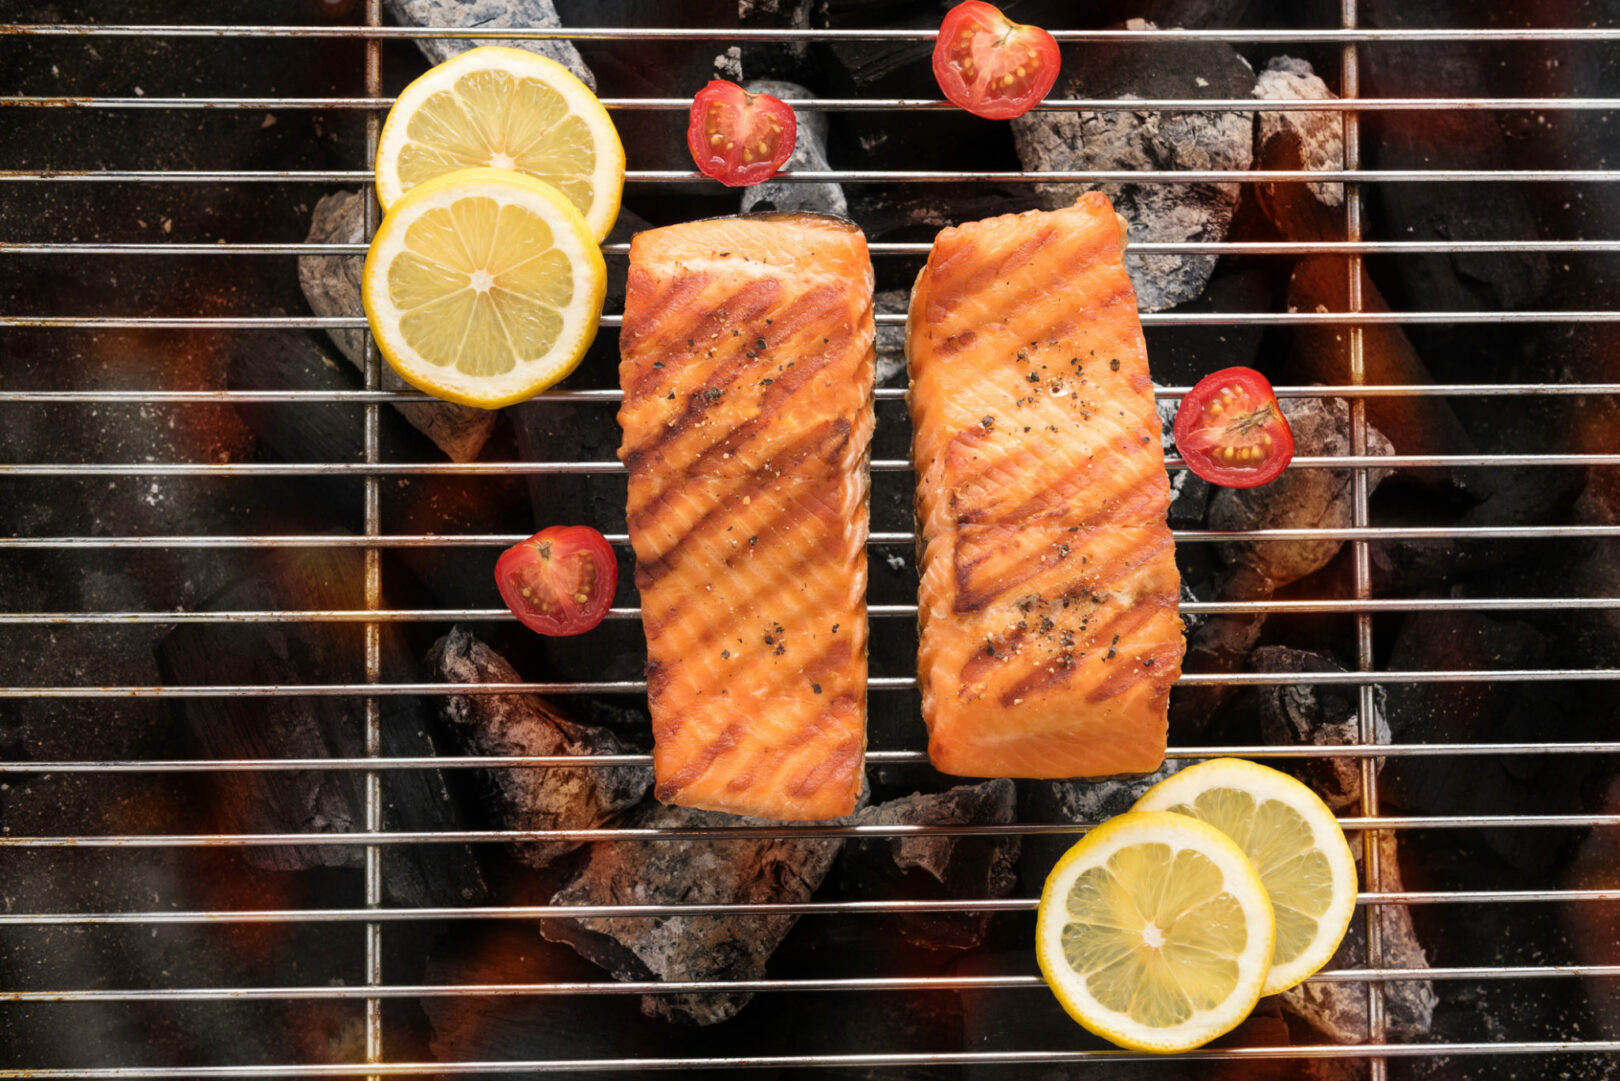 Grilled Skin-on Fish Fillets with Marinated Citrus Salad